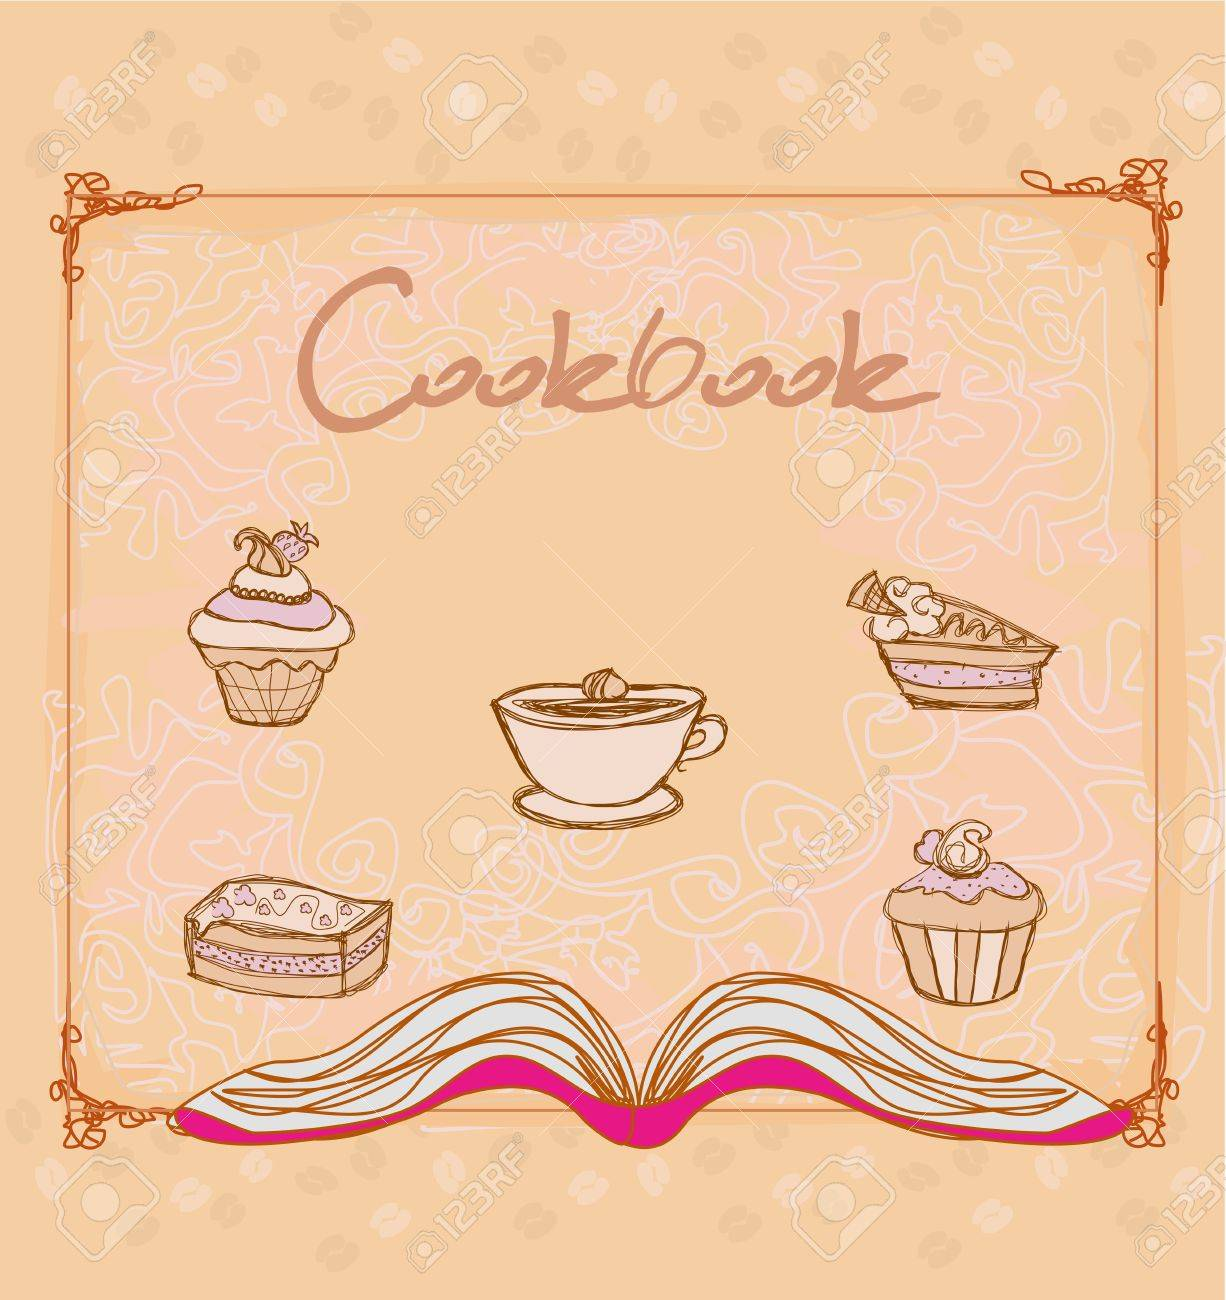 Cookbook Stock Vector - 17224858